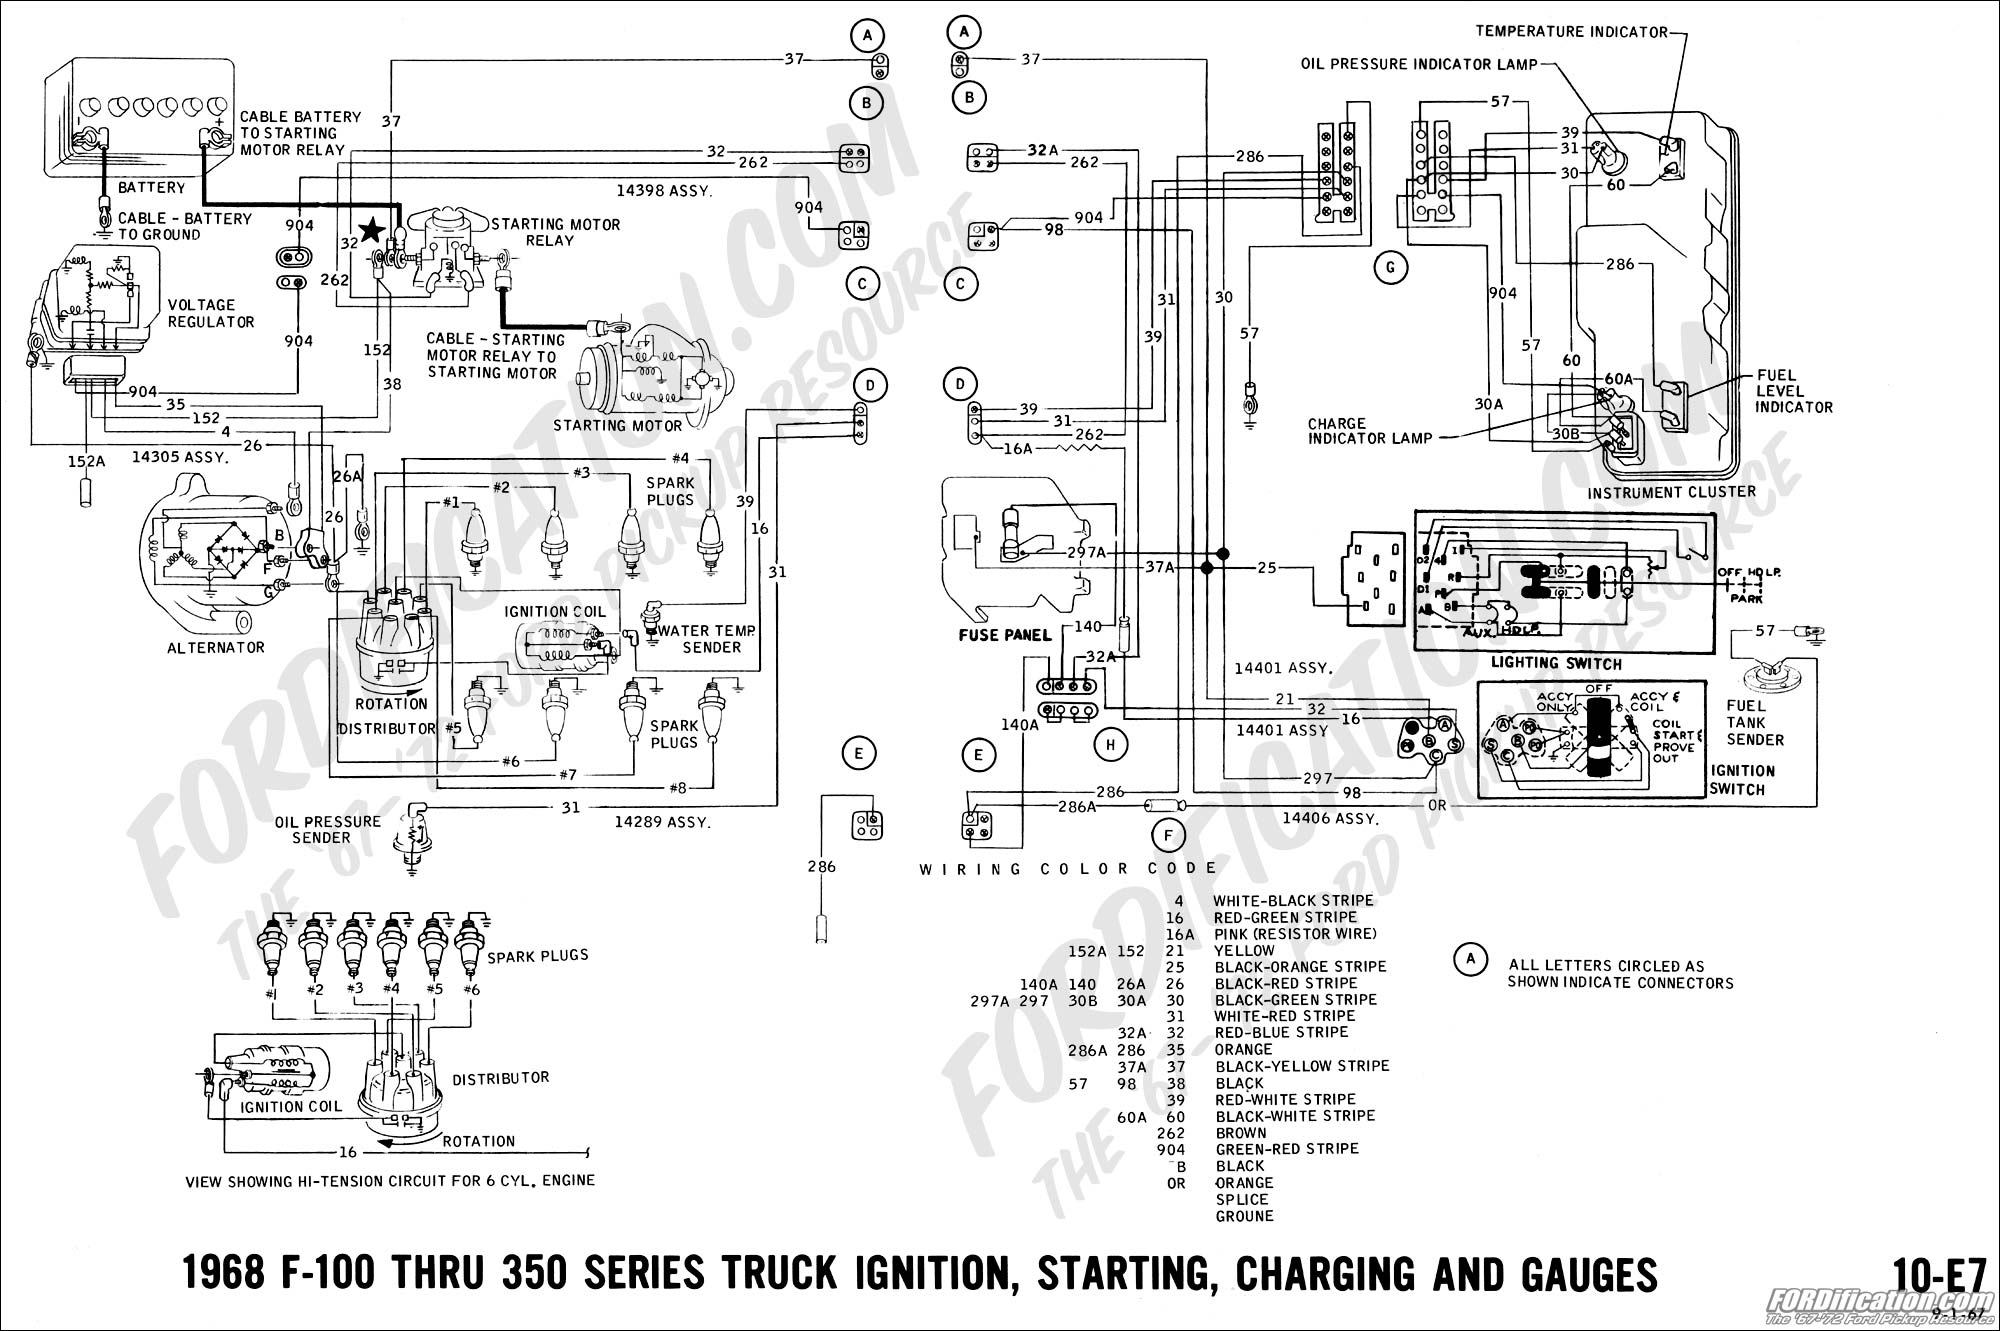 1967 F100 Electrical Wiring Diagram - 12.19.web-berei.de • Wiring Diagram For Ford Truck on 1968 ford truck parts, 1968 ford truck cab mount, pickup truck diagram, 1968 ford truck brochure, 1968 ford truck radio, 1968 ford truck carburetor, truck parts diagram, ford truck engine diagram, 1968 ford truck wheels, 1968 ford truck wire schematic drawing, 1968 ford truck exhaust, 1968 ford truck shop manual, 1968 ford truck transmission, ford truck rear brake diagram, 93 ford relay diagram, 1968 ford truck air cleaner,